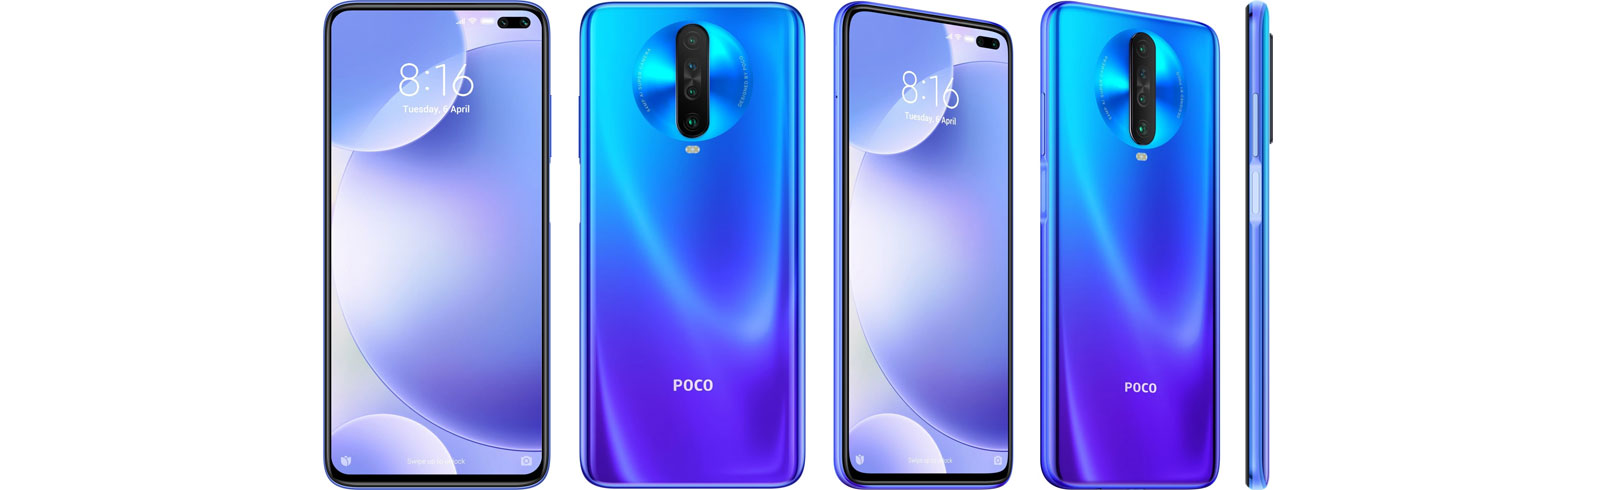 Poco X2 goes official, is a re-branded Redmi K30, indeed